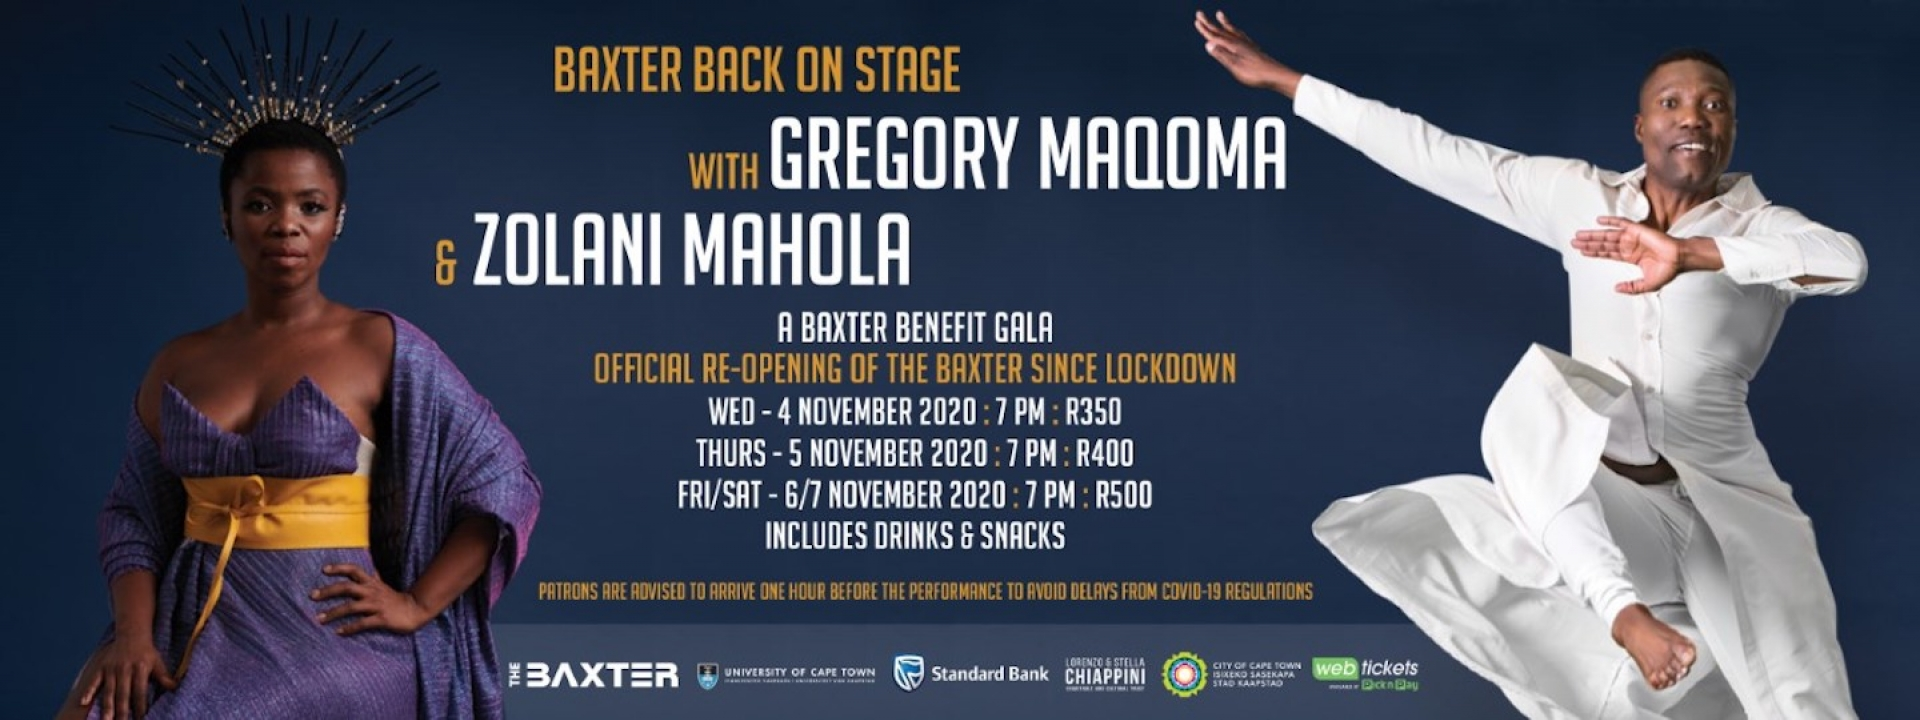 Baxter Back on Stage with Gregory Maqoma and Zolani Mahola